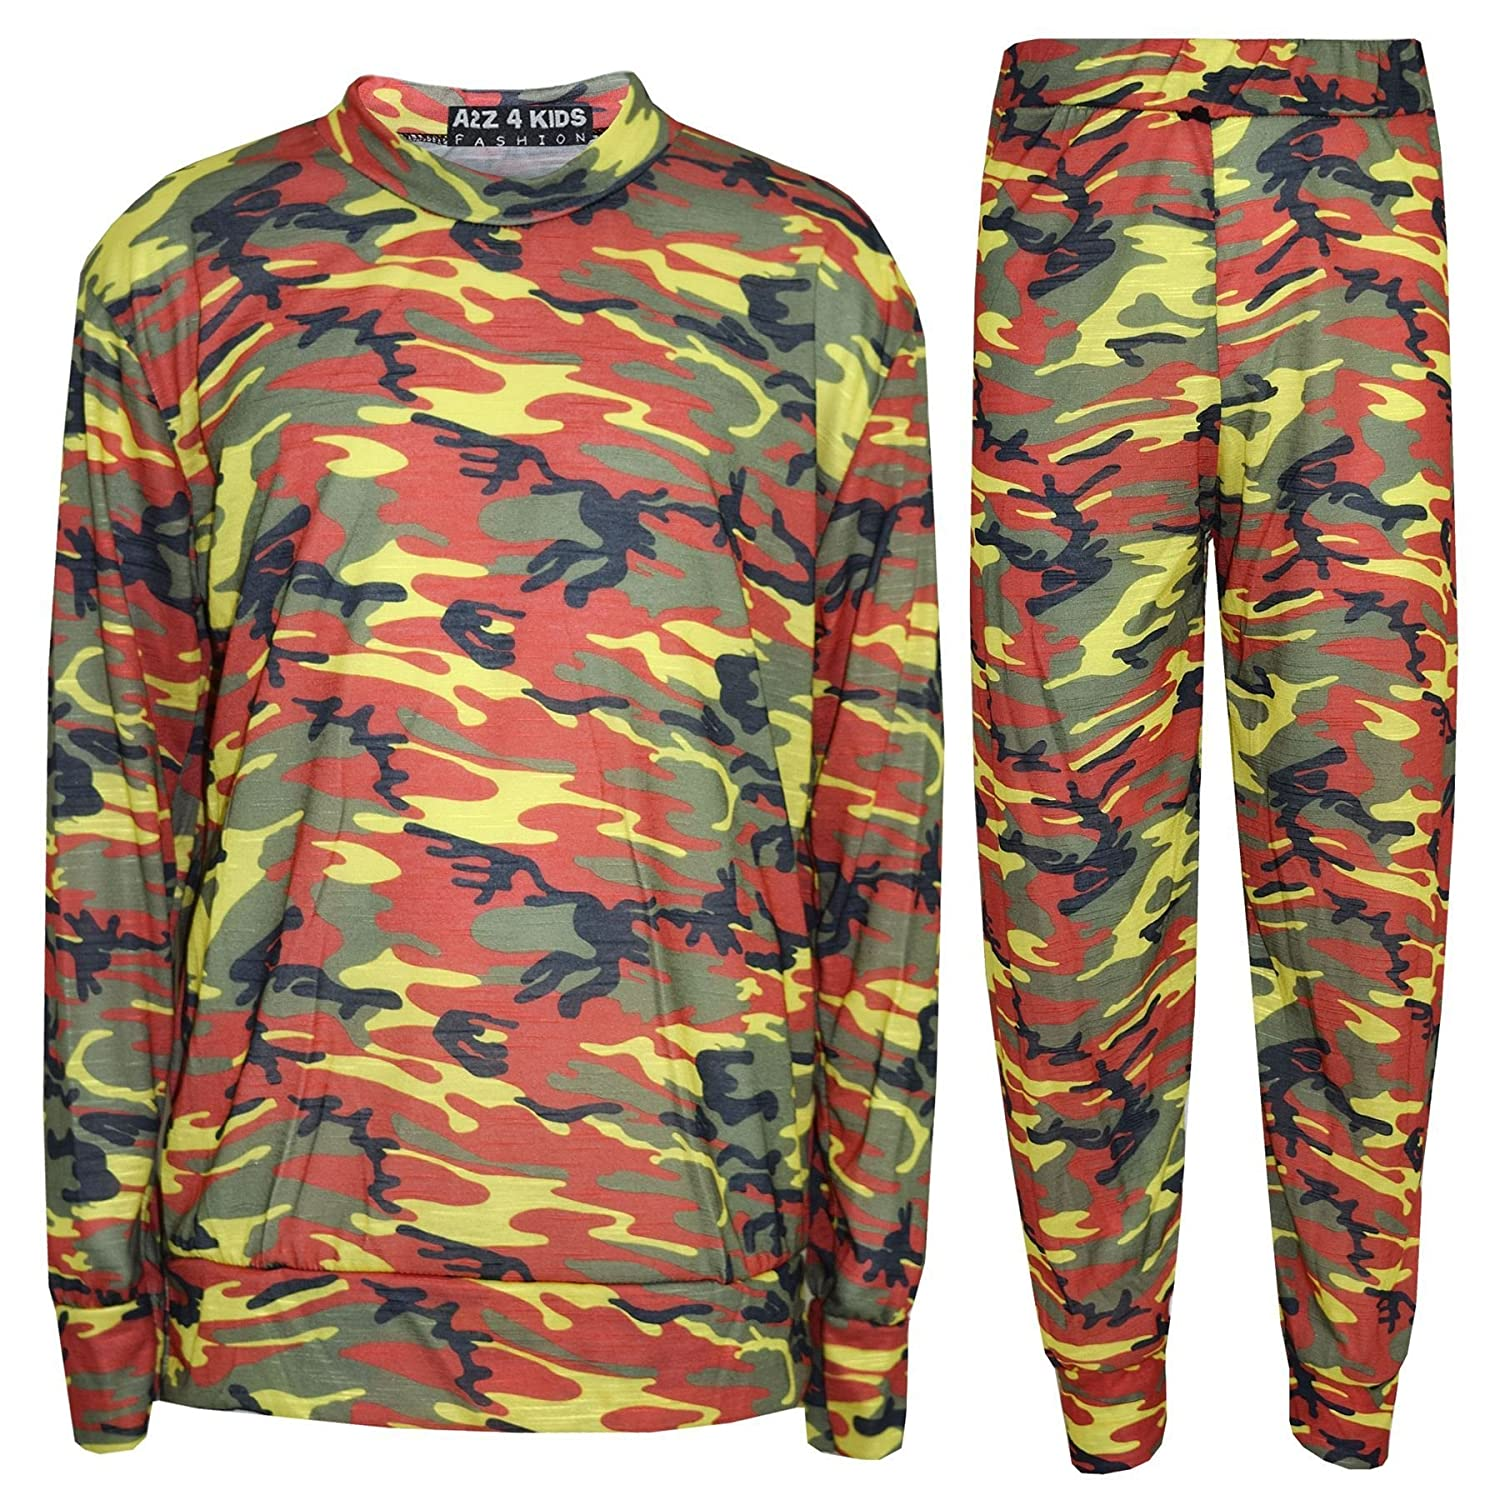 A2Z 4 Kids® Kids Jogging Suit Girls Camouflage Lounge Suit Tracksuit Hoddie Bottom 2-13 Years